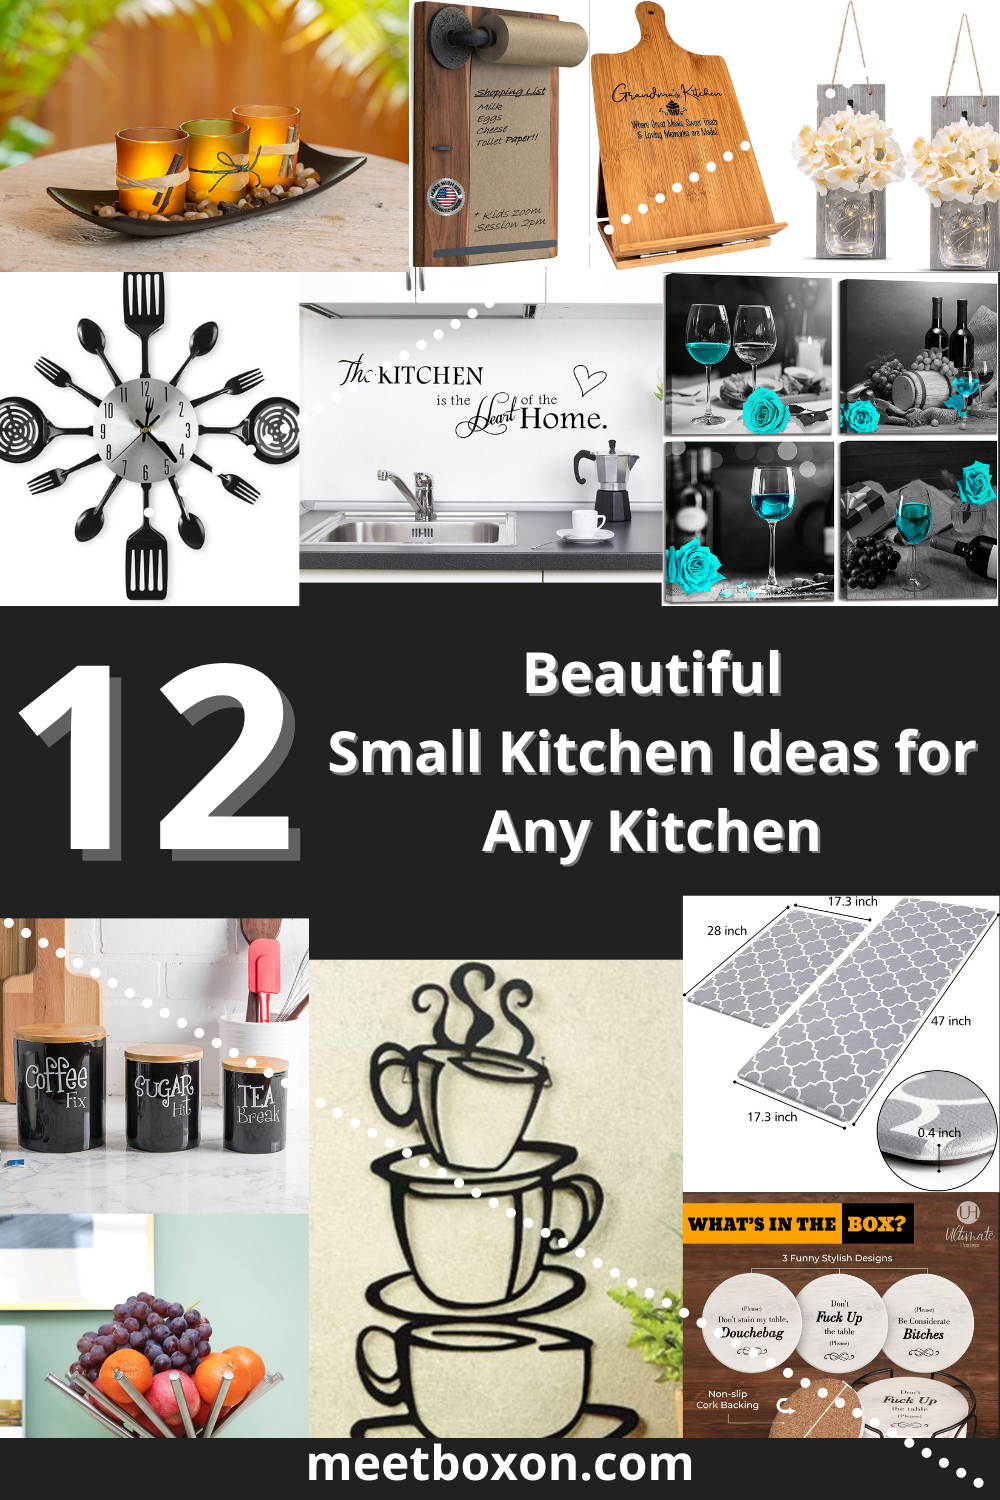 12 Beautiful Small Kitchen Ideas for Any Kitchen